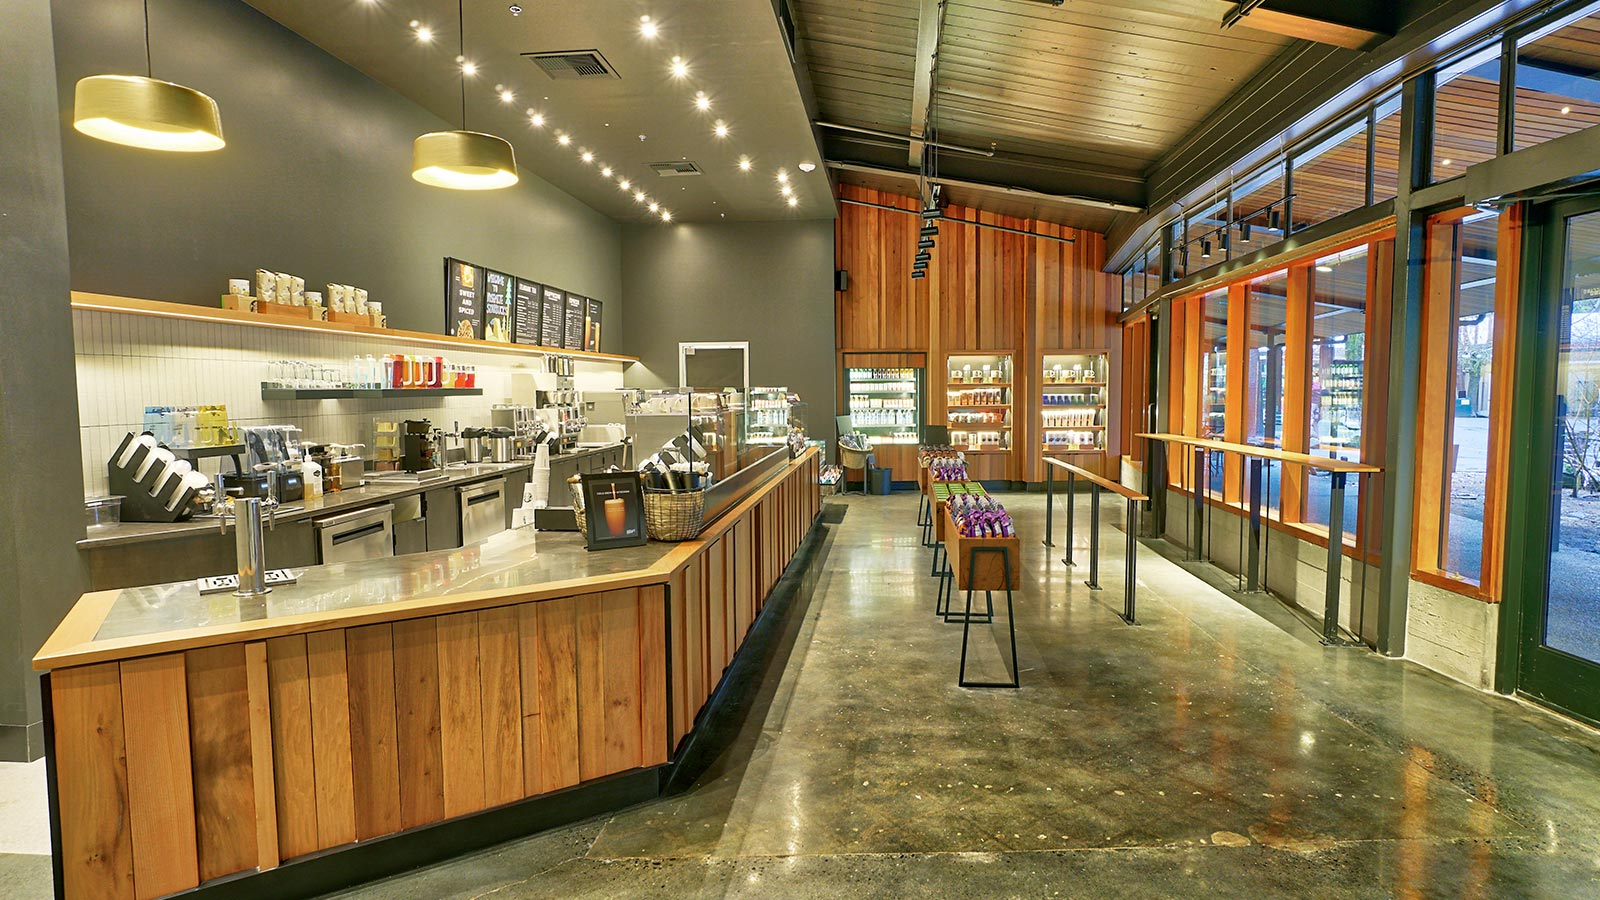 Starbucks - Base Camp Eatery